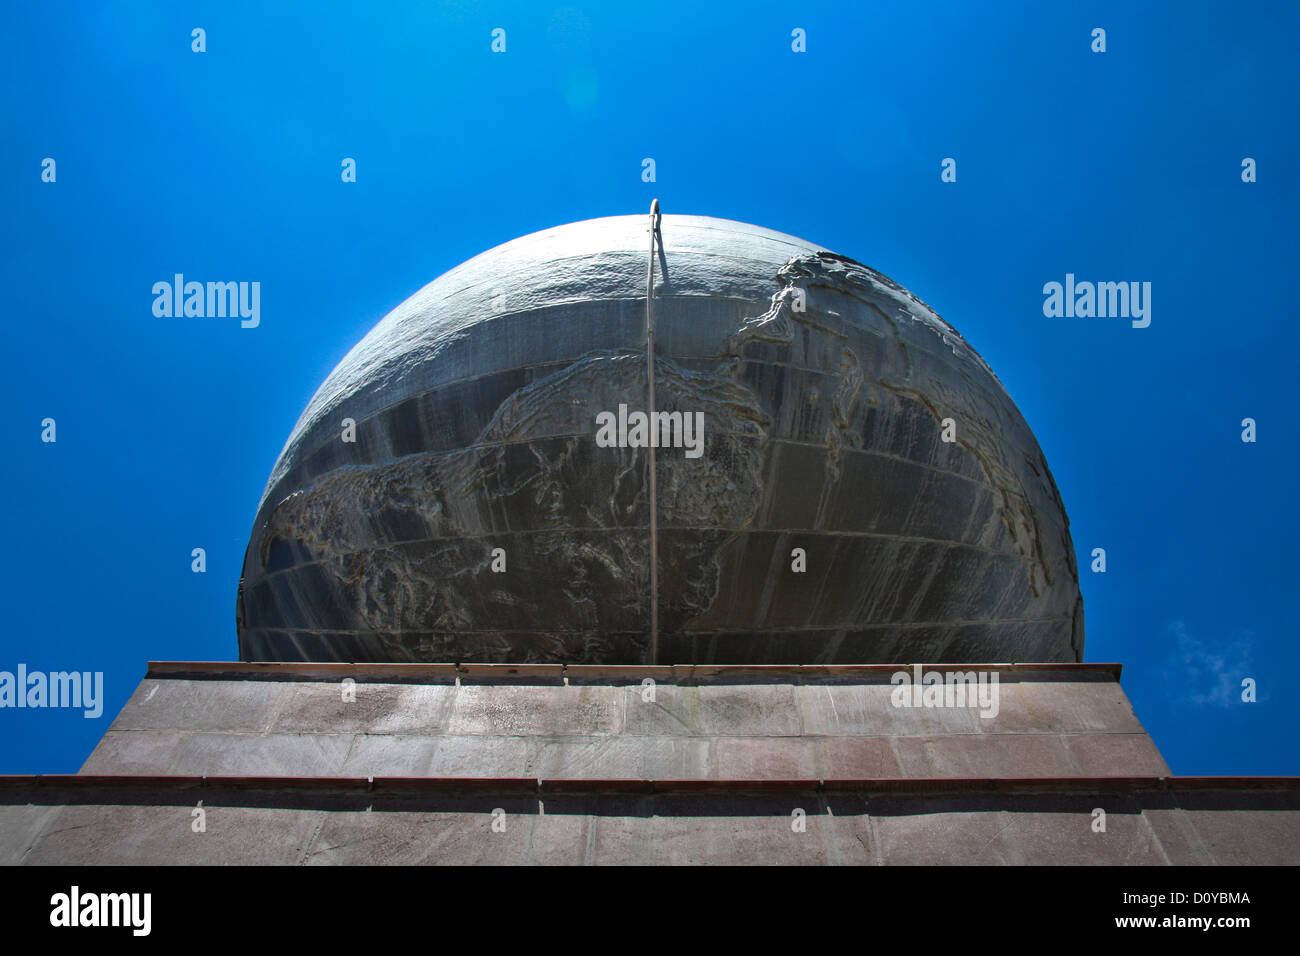 Earth globe in middle of the world in Ecuador - Stock Image